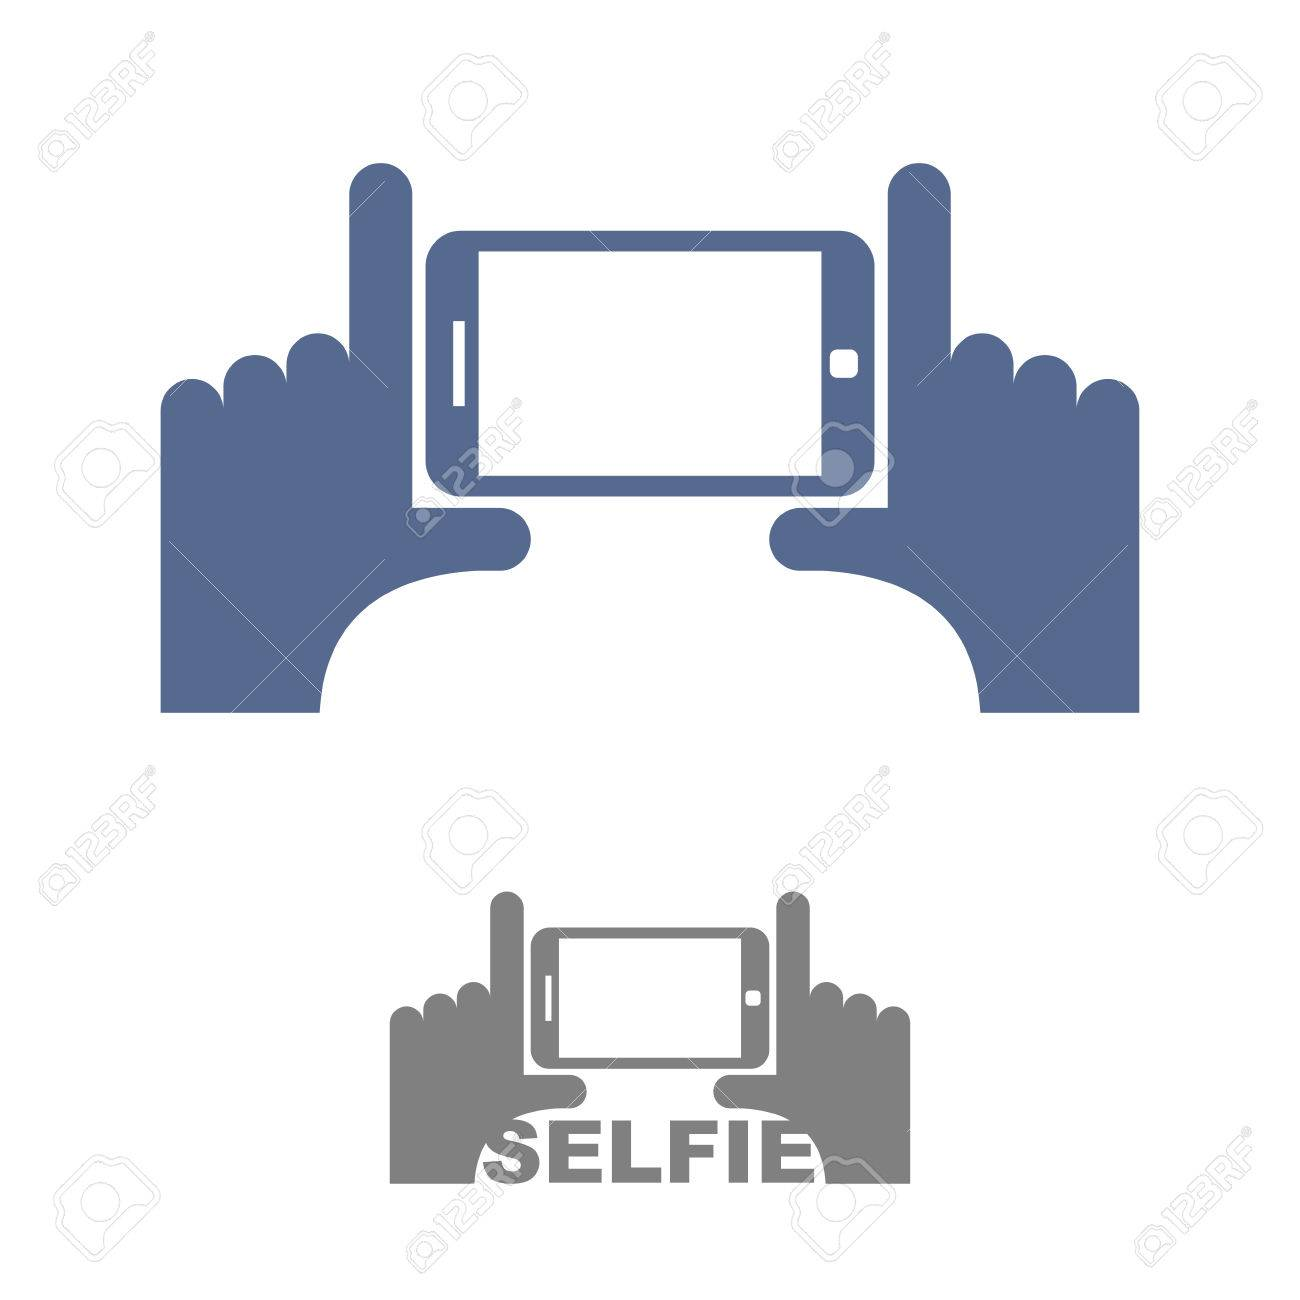 Selfie Logo. Sign emblem for a photo on phone. Hands and a Smartphone. Vector illustration - 42793699